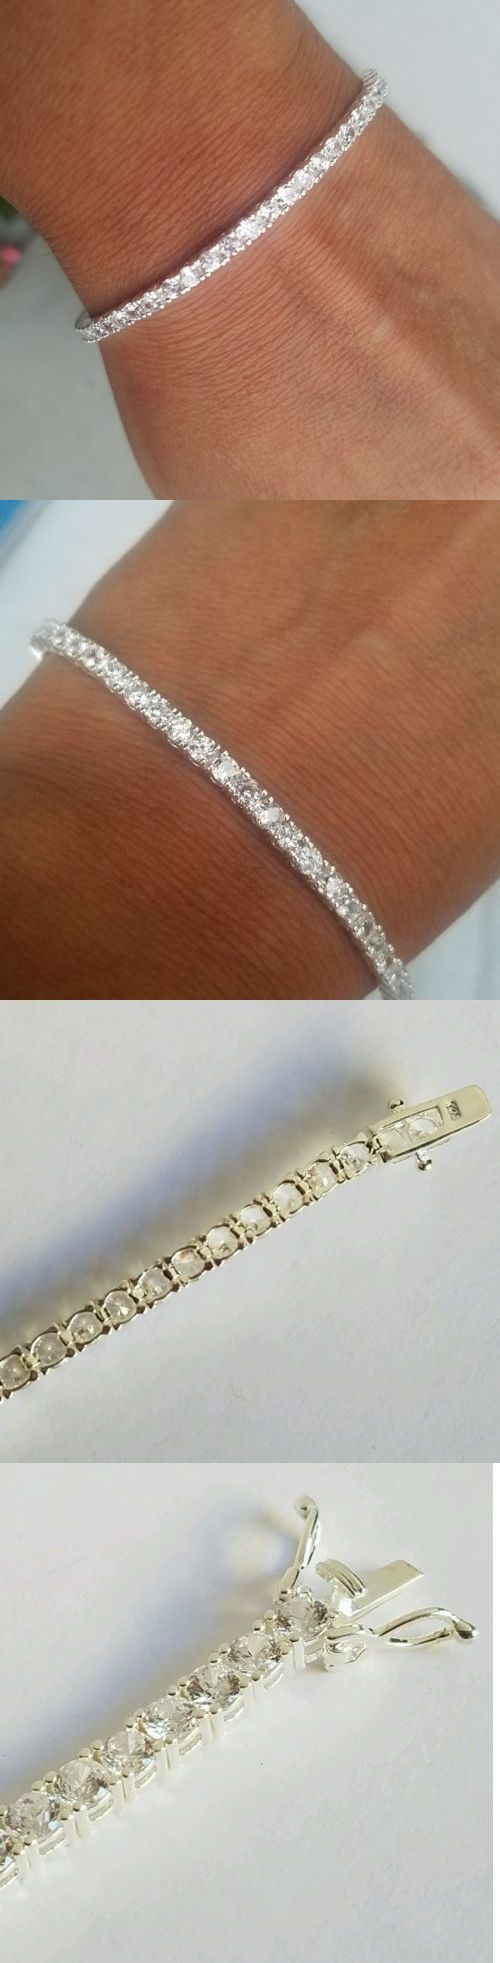 Diamond 10976: Woman S Sterling Silver 925 Round Man Made Diamond Tennis Bracelet 7 Inches Long -> BUY IT NOW ONLY: $39.99 on eBay!